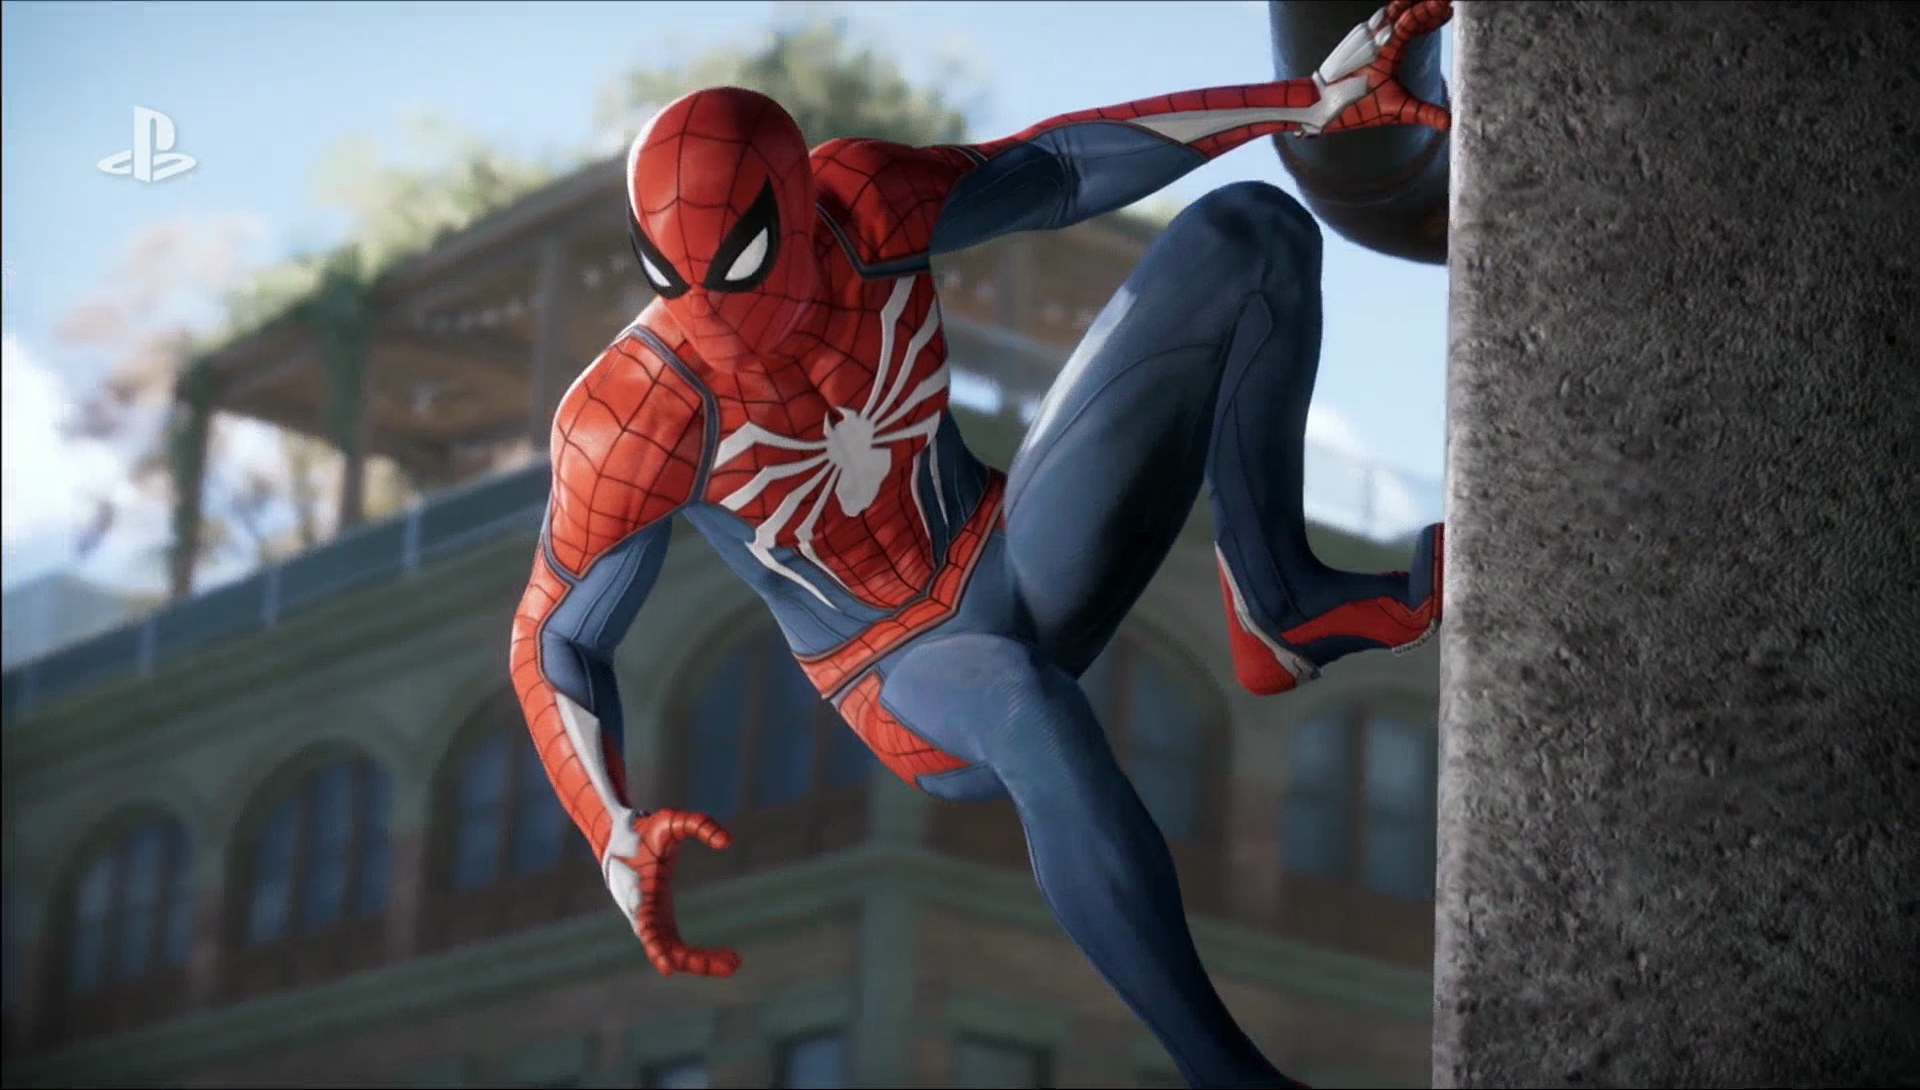 Insomniac's Spider-Man game will have different suit options available